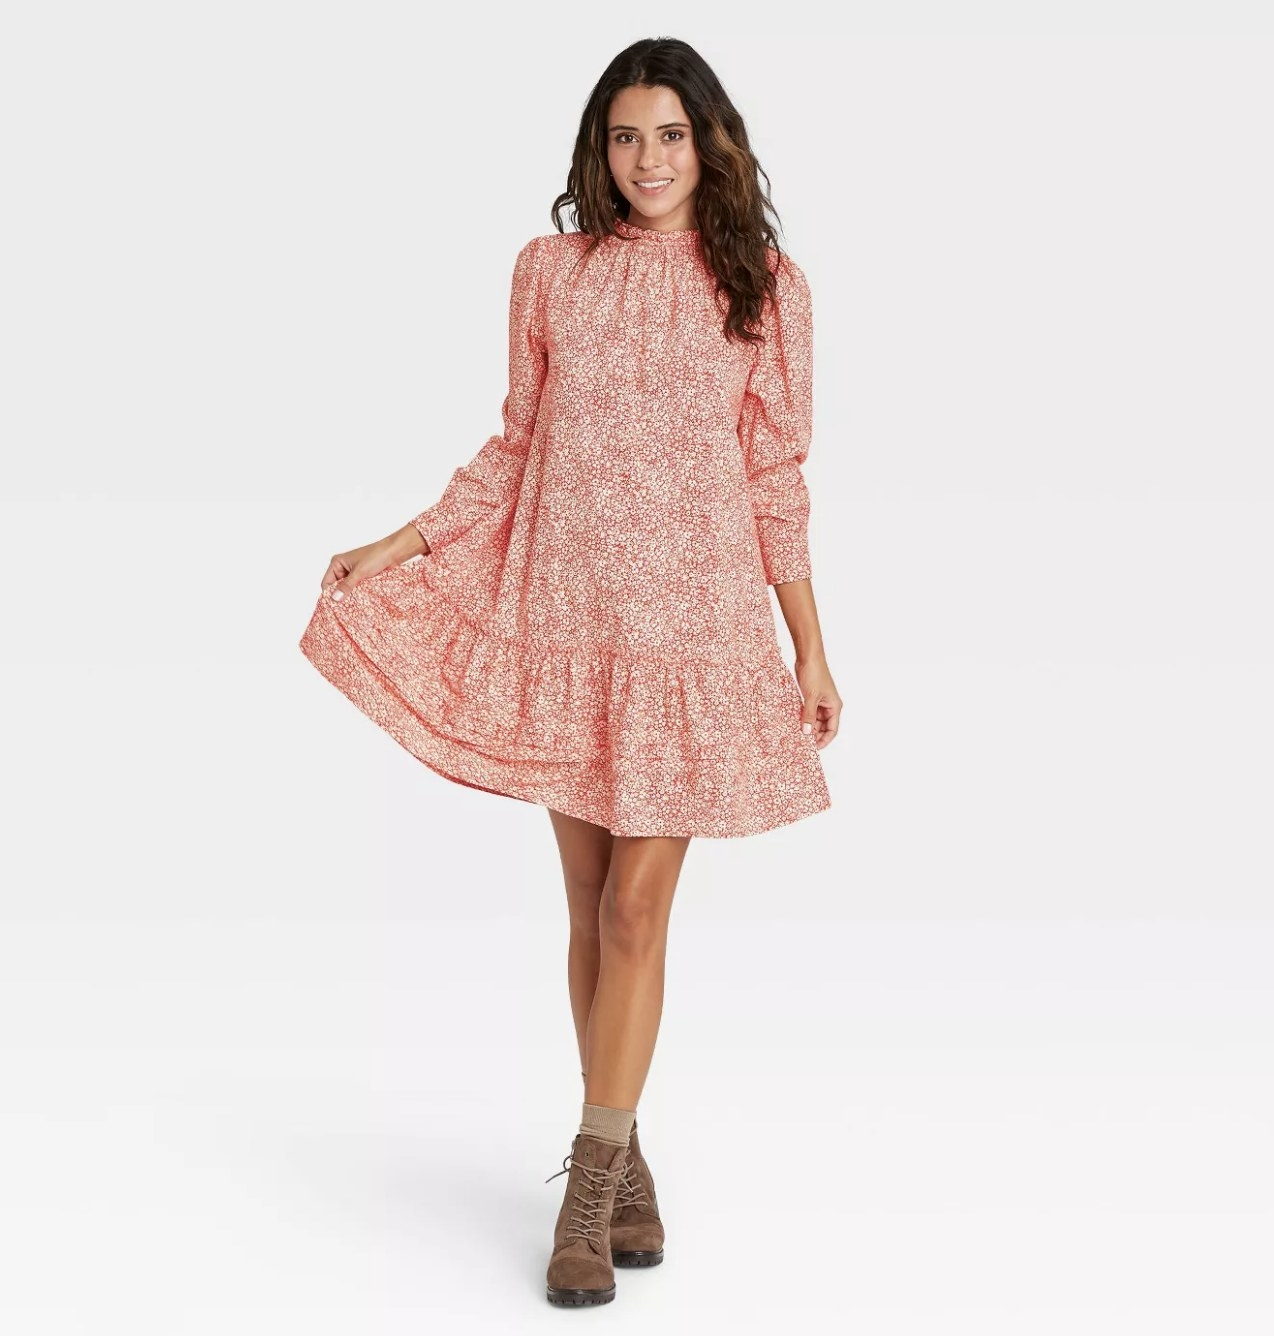 long puff-sleeve dress in pink floral pattern